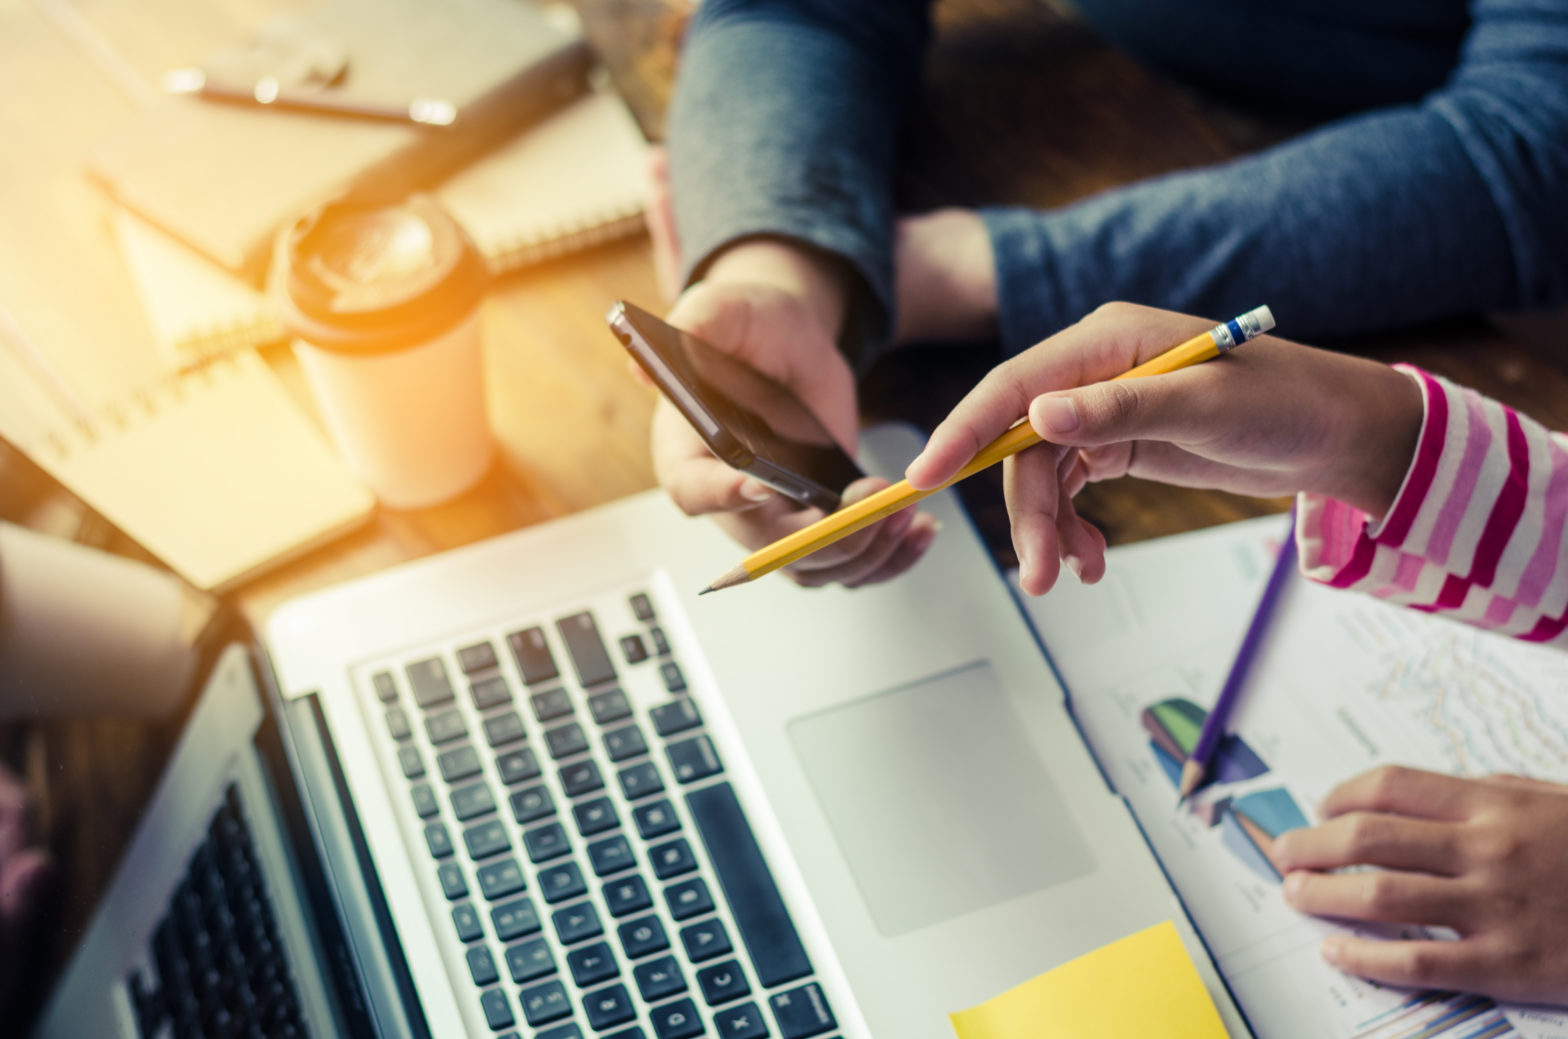 5 Top Tips for Small Business Digital Marketing